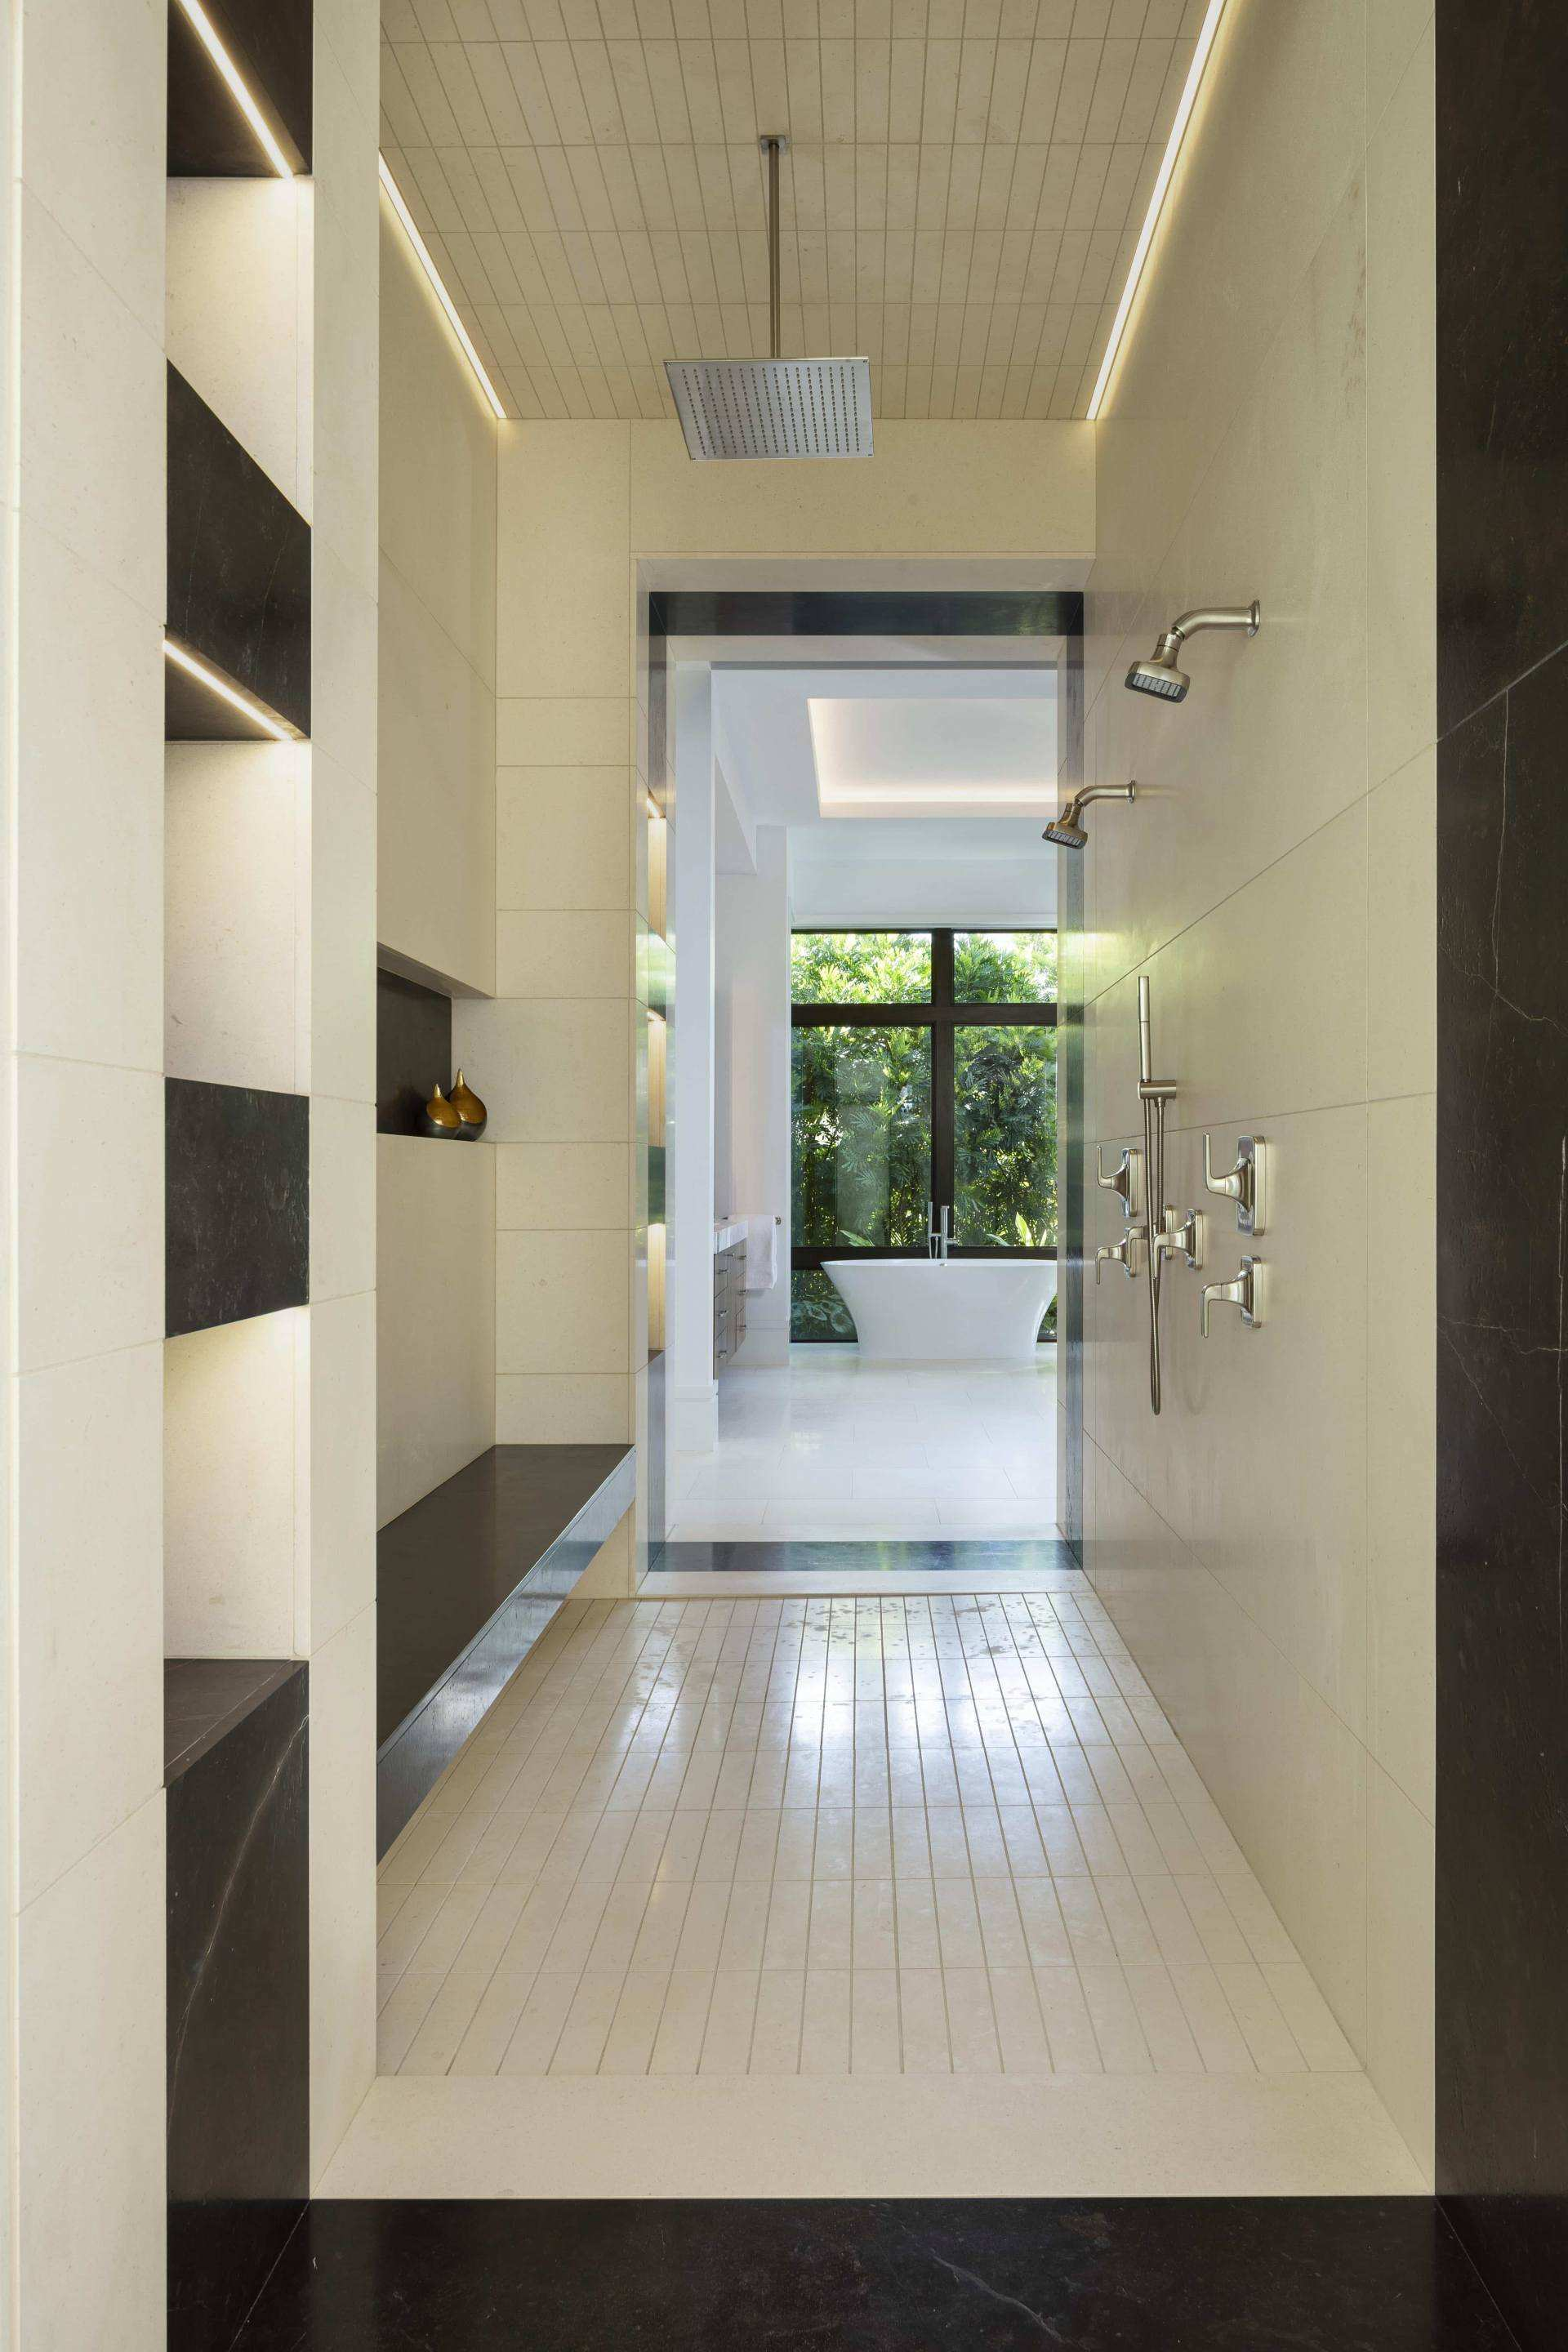 Port Royal Home - Black and White Shower